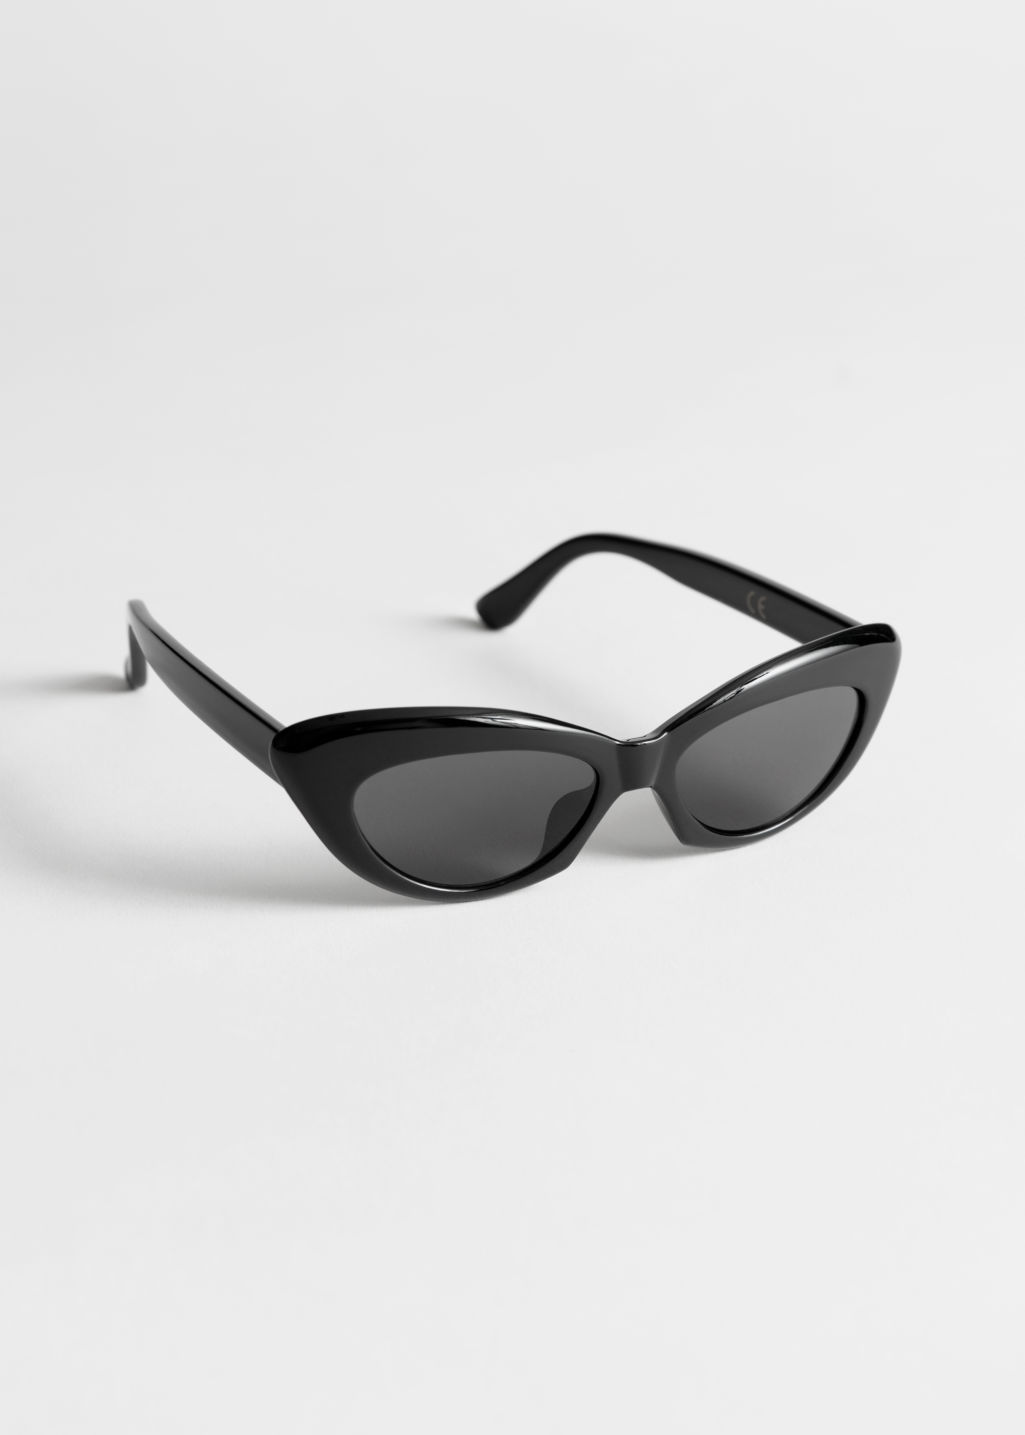 Sunglasses Cat Blackamp; Stories Eye Other Rounded roxCedB